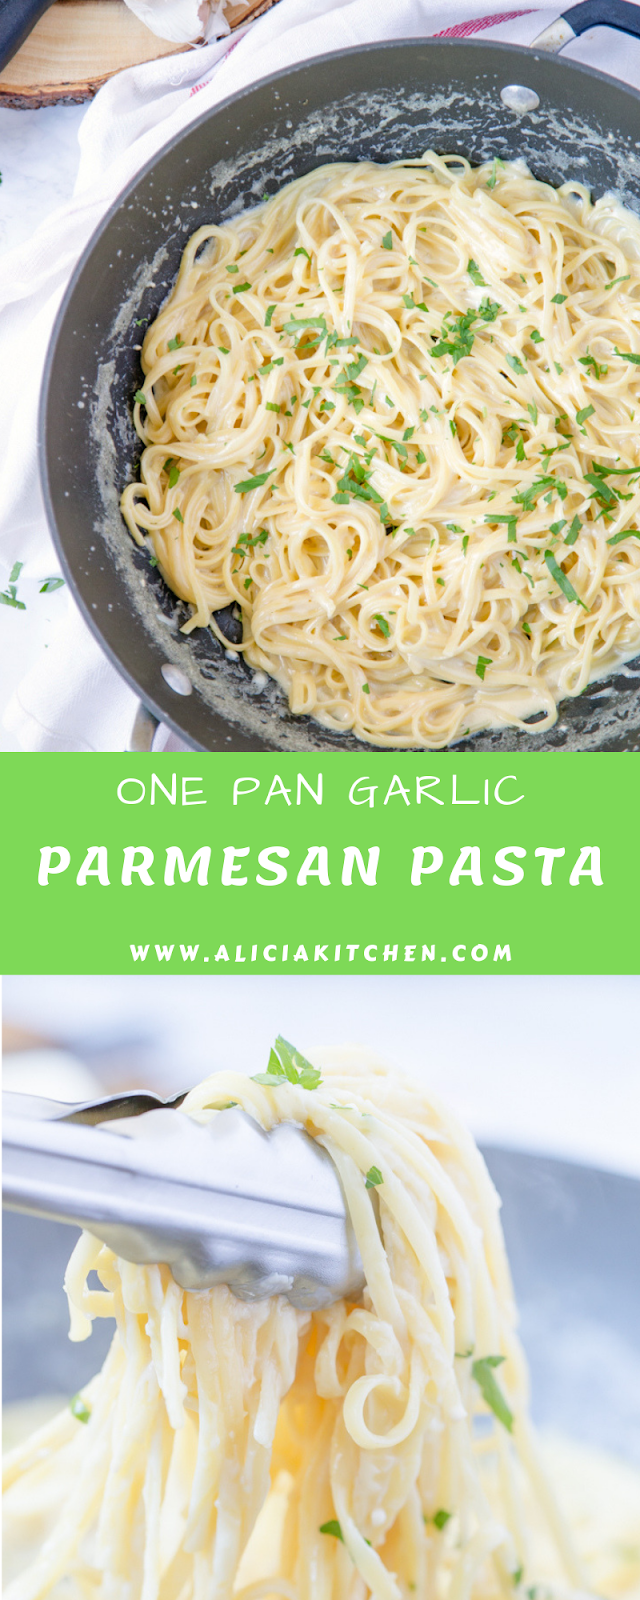 ONE PAN GARLIC PARMESAN PASTA